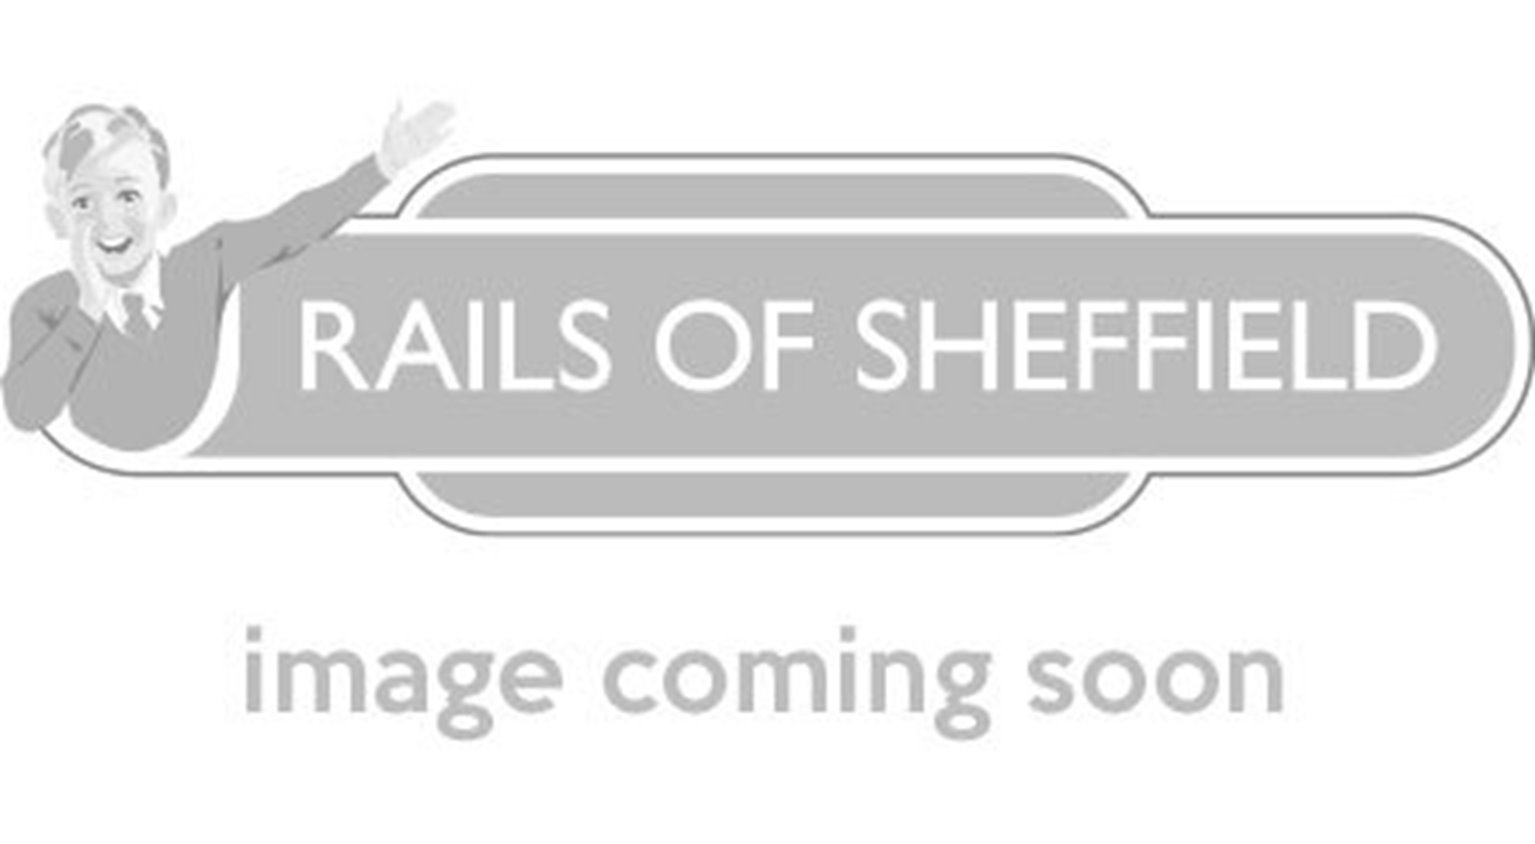 Class 121 #W55020 Green with Whiskers - Dummy car